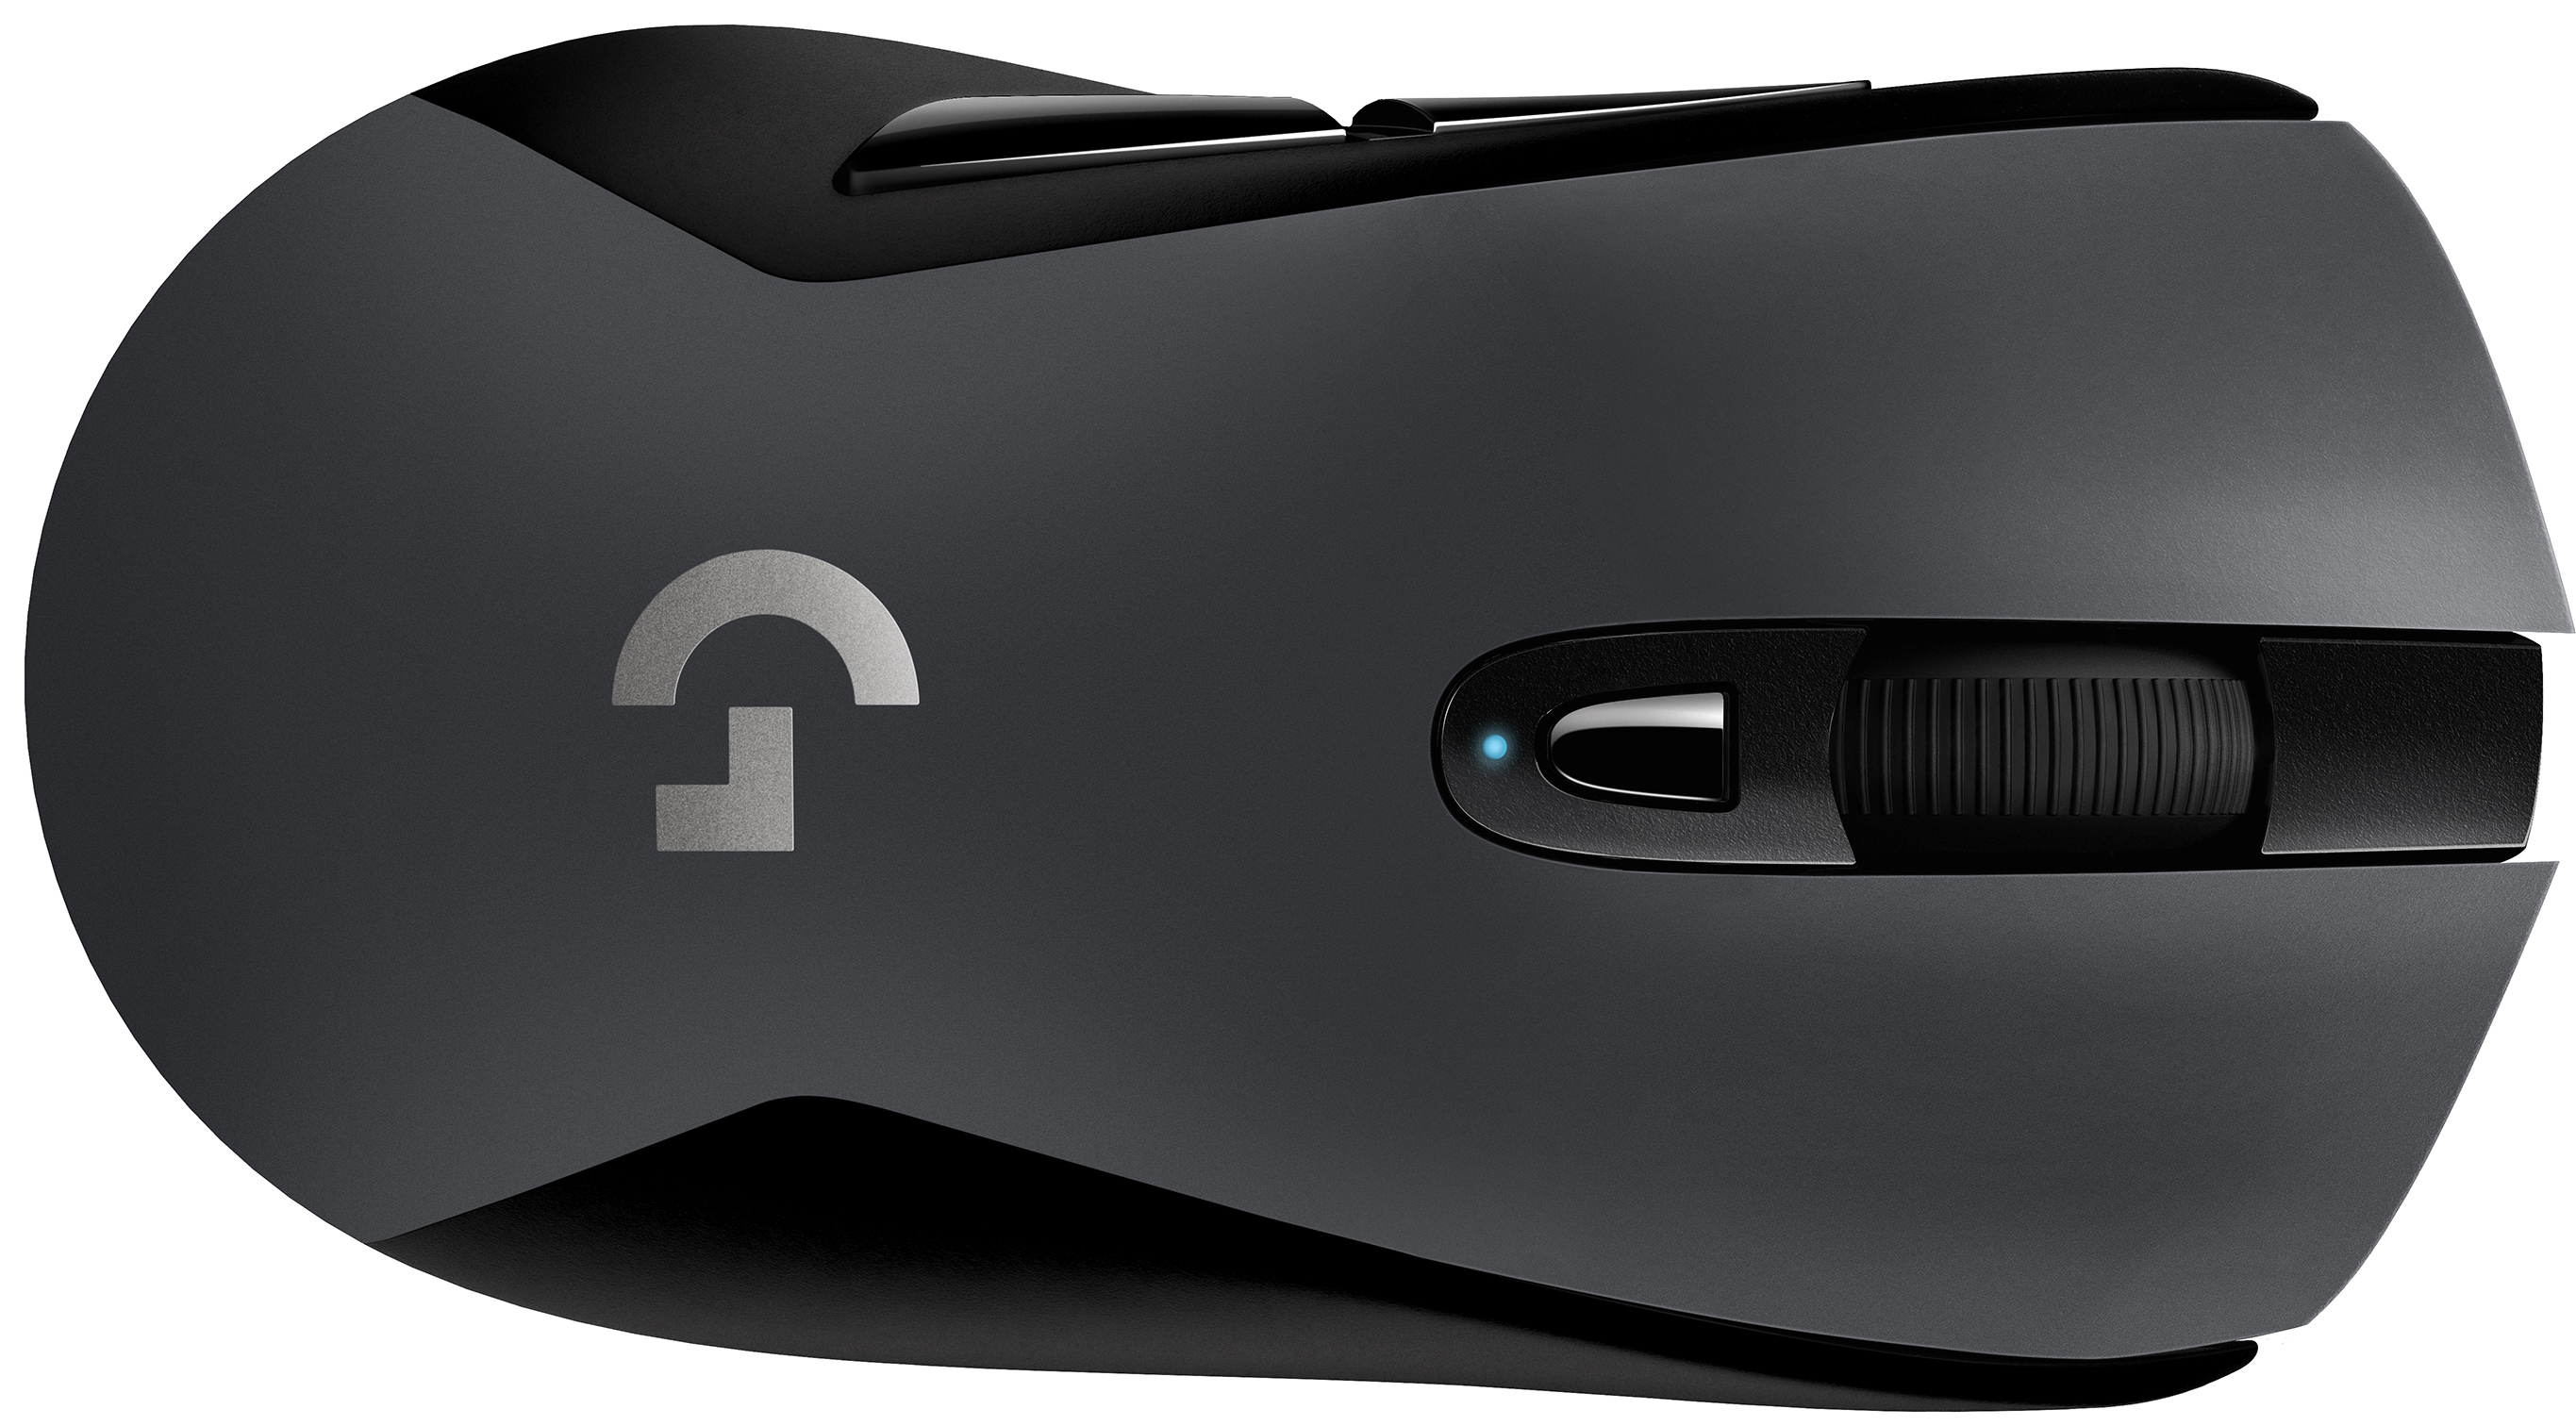 Logitech Launches G603 'Lightspeed': 12,000 DPI Hero Sensor